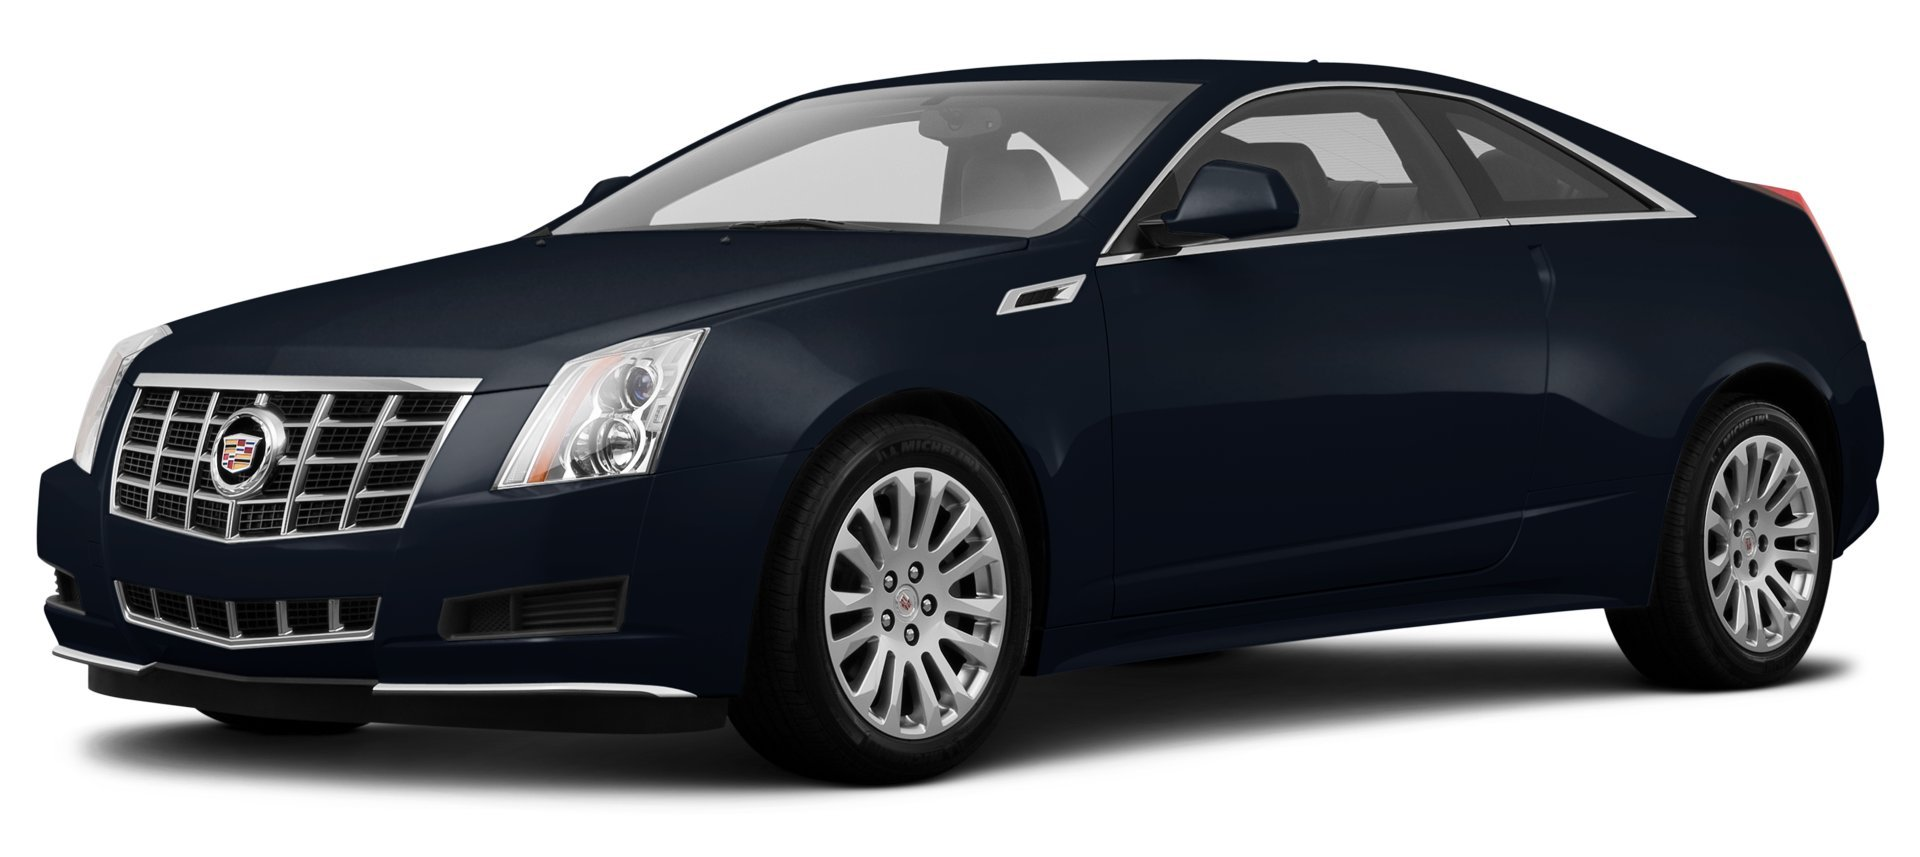 2014 cadillac cts reviews images and specs vehicles. Black Bedroom Furniture Sets. Home Design Ideas